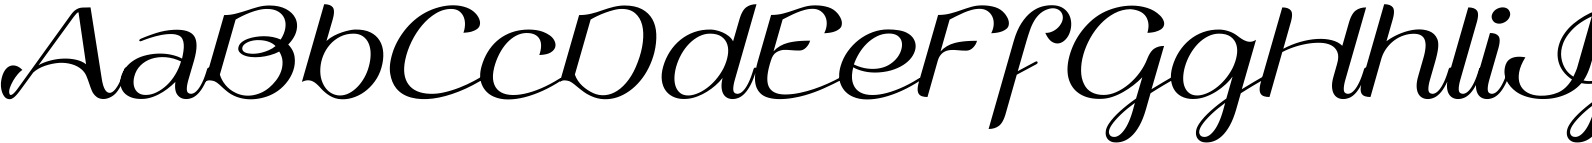 Vailsnick Italic Font